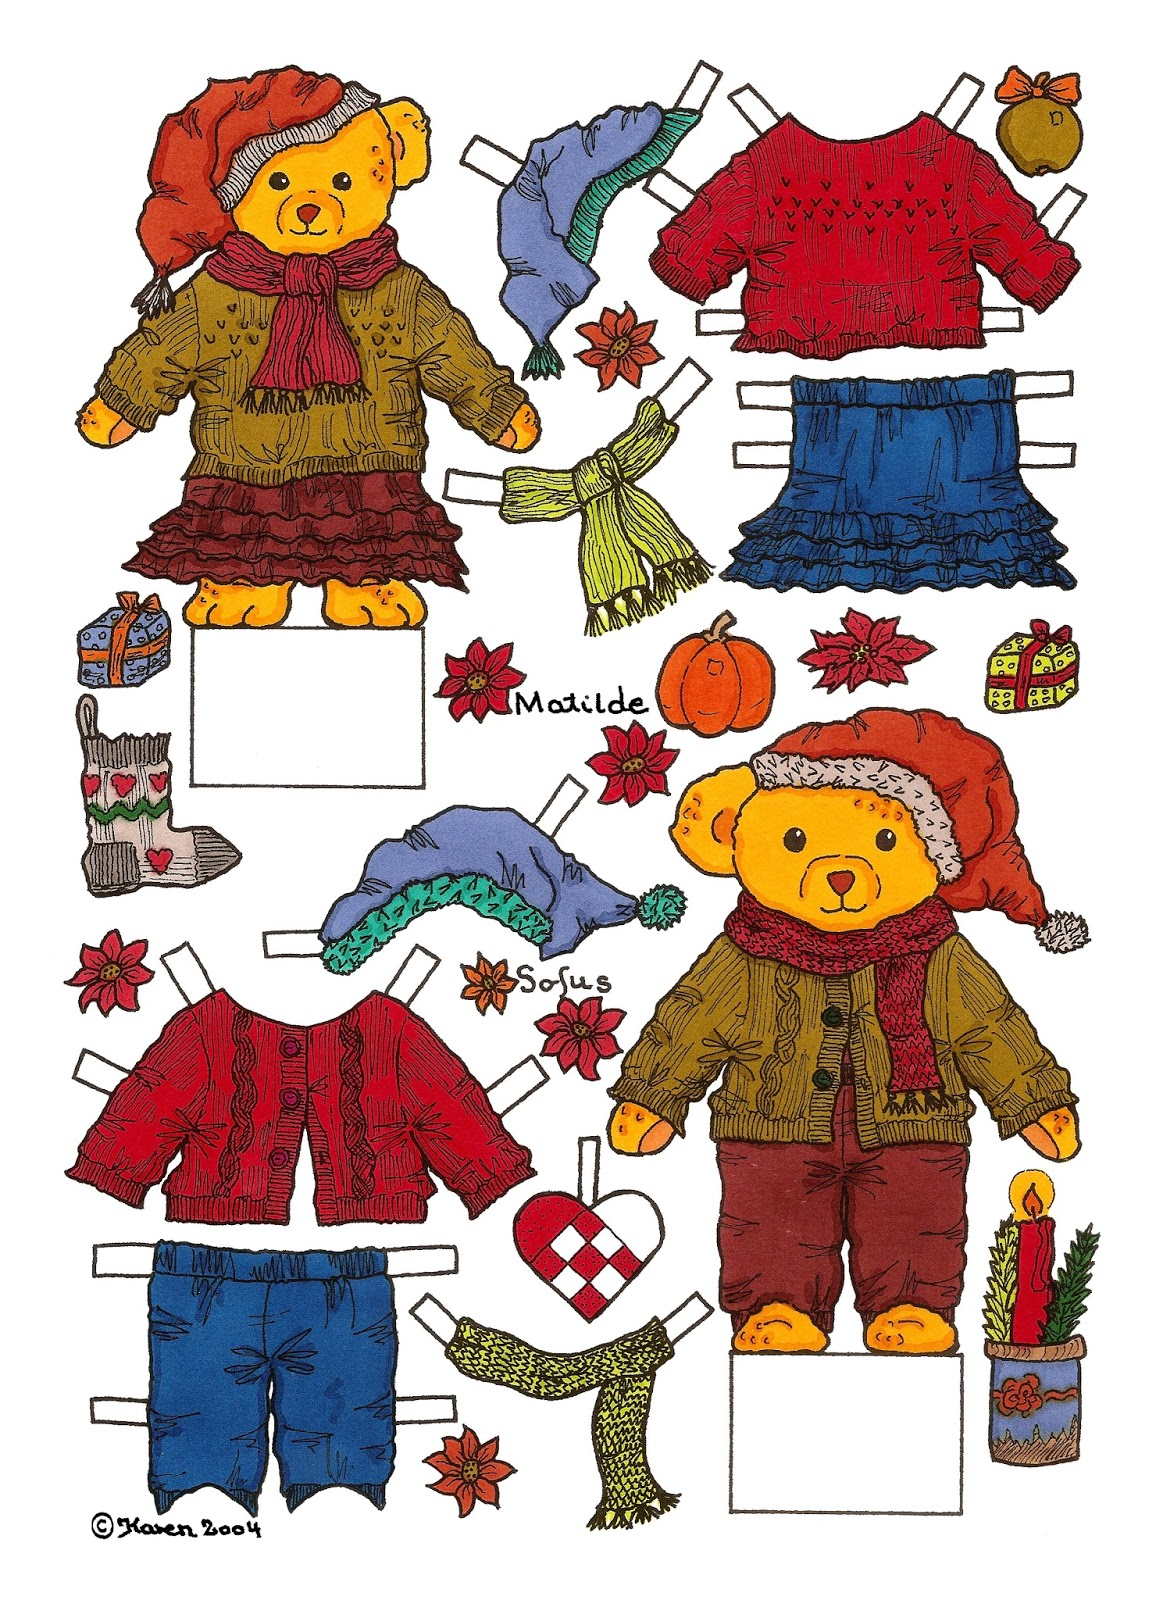 Winter Season Cut-outs Matilde and Sofus.